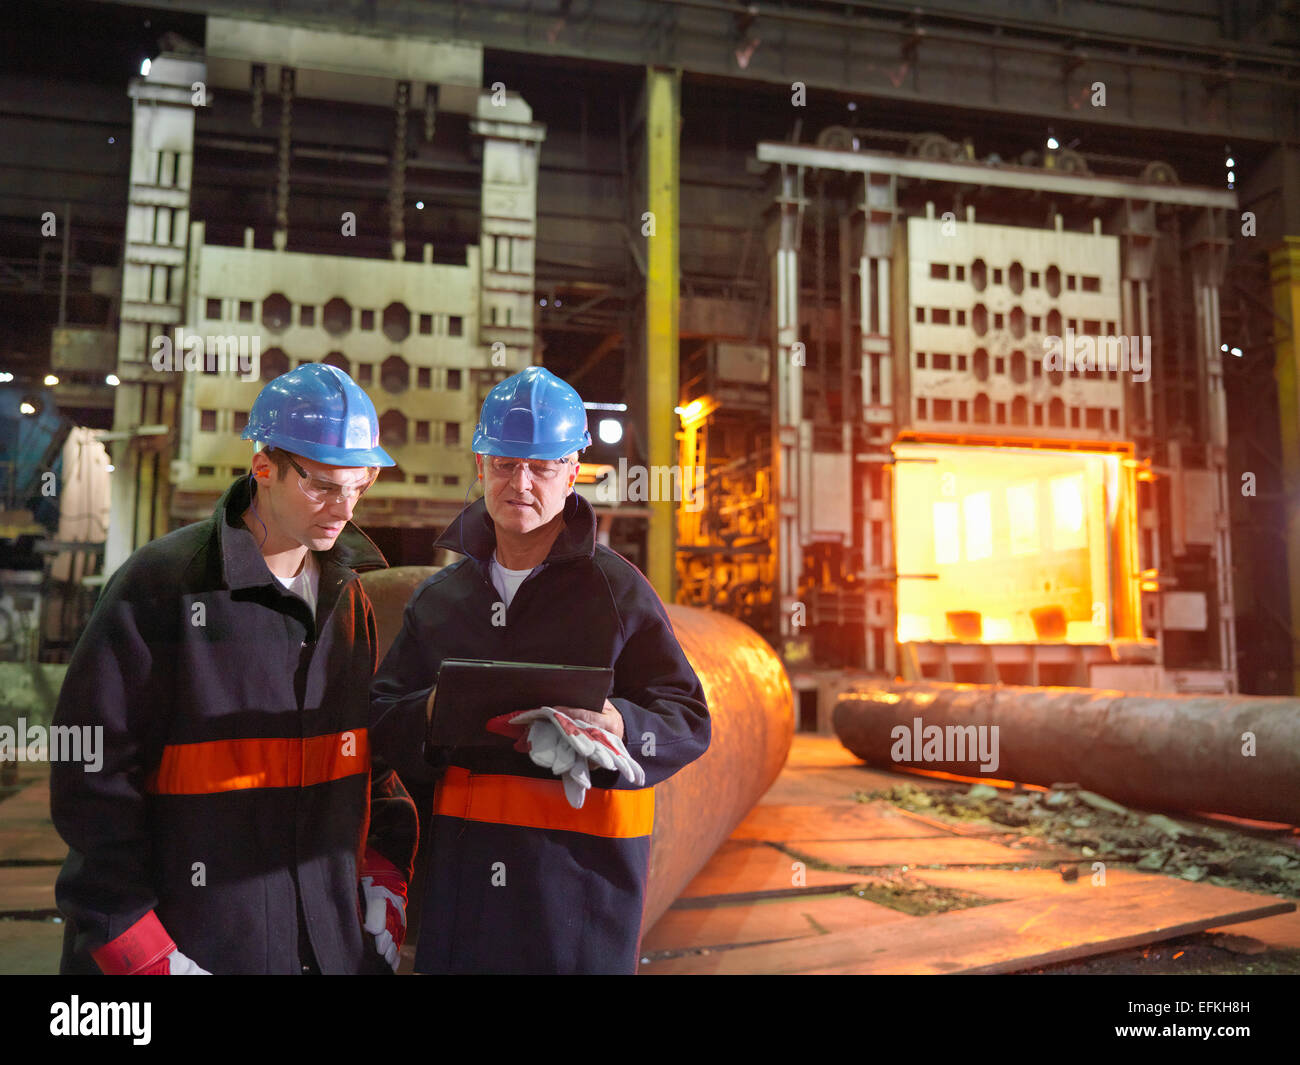 Steelworkers with digital tablet in front of furnace in steelworks Stock Photo